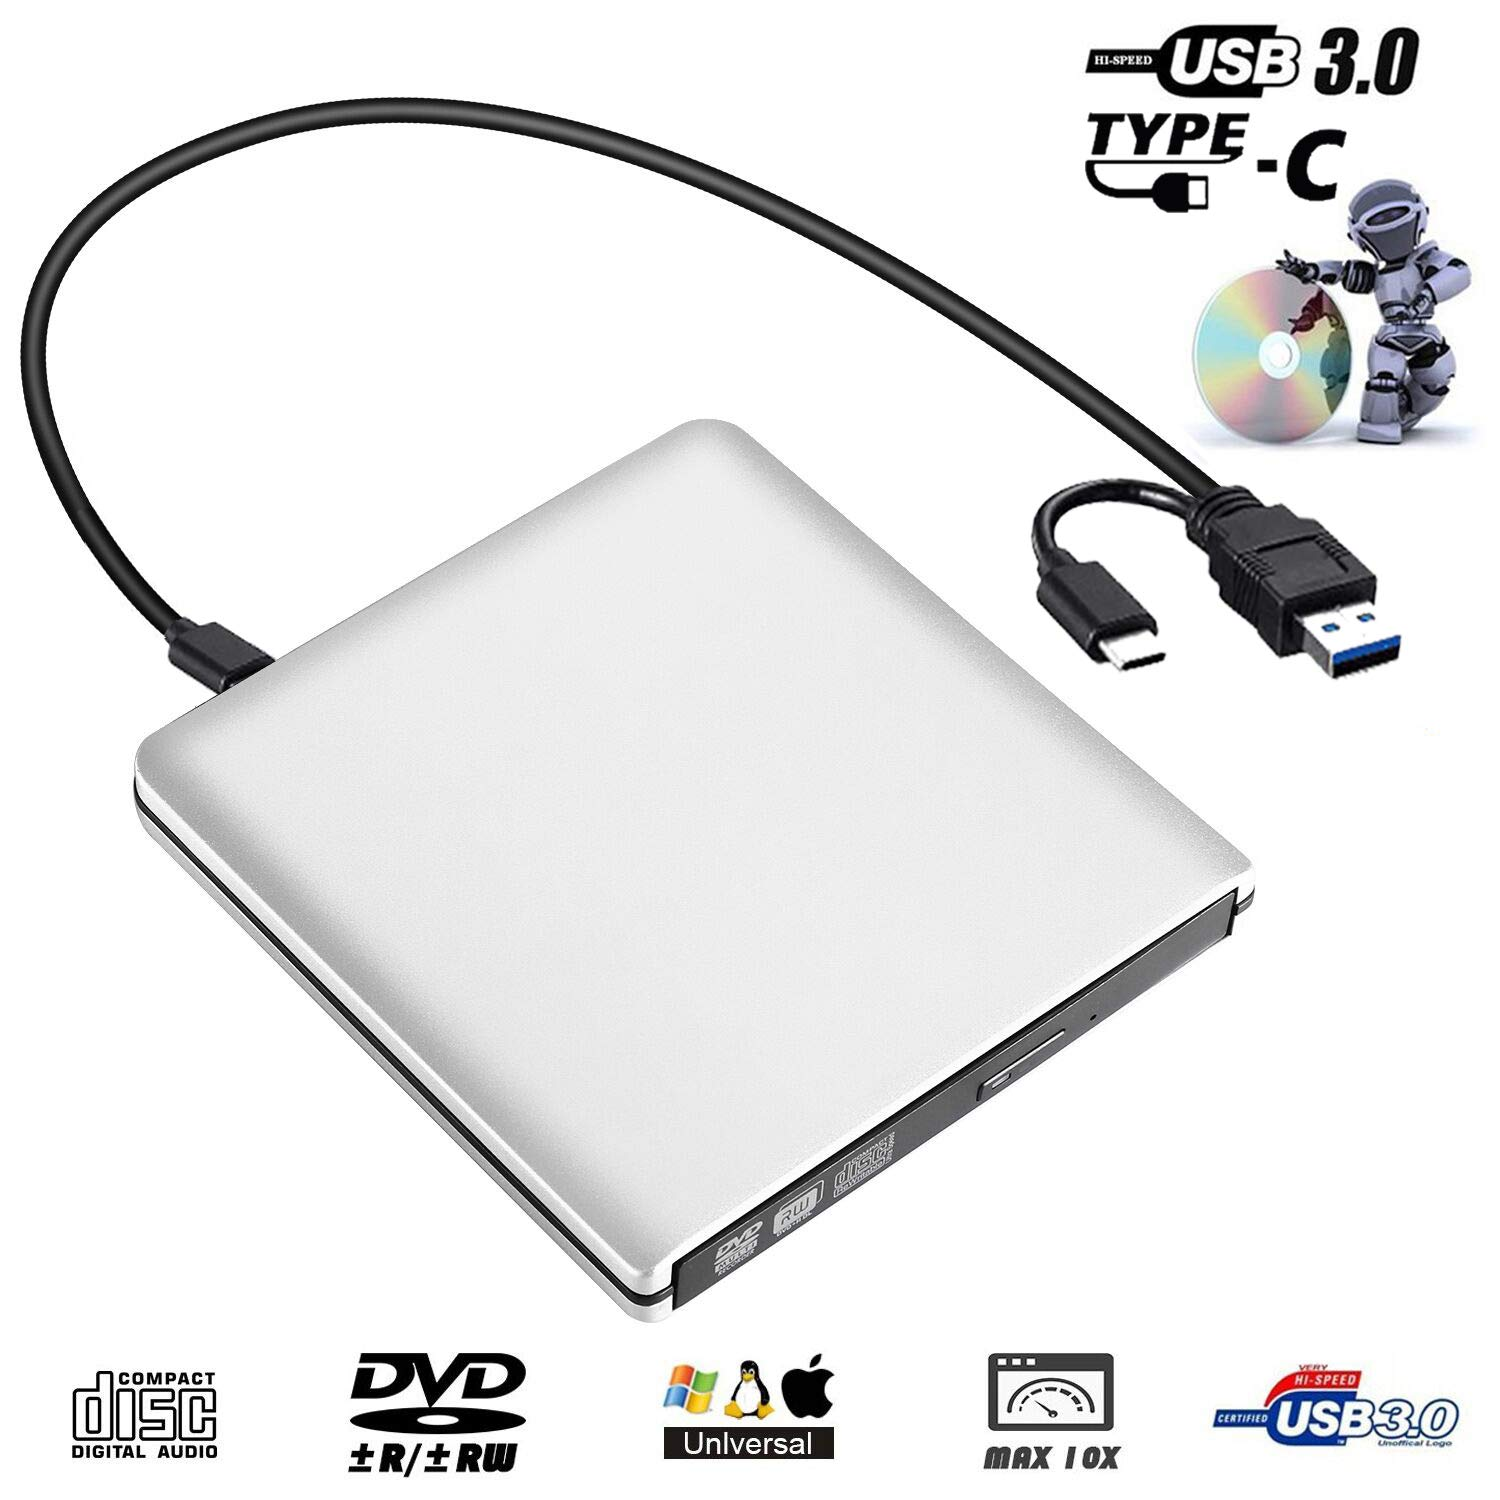 Amazon.com: emmako externo USB 3.0 reproductor de CD DVD ...